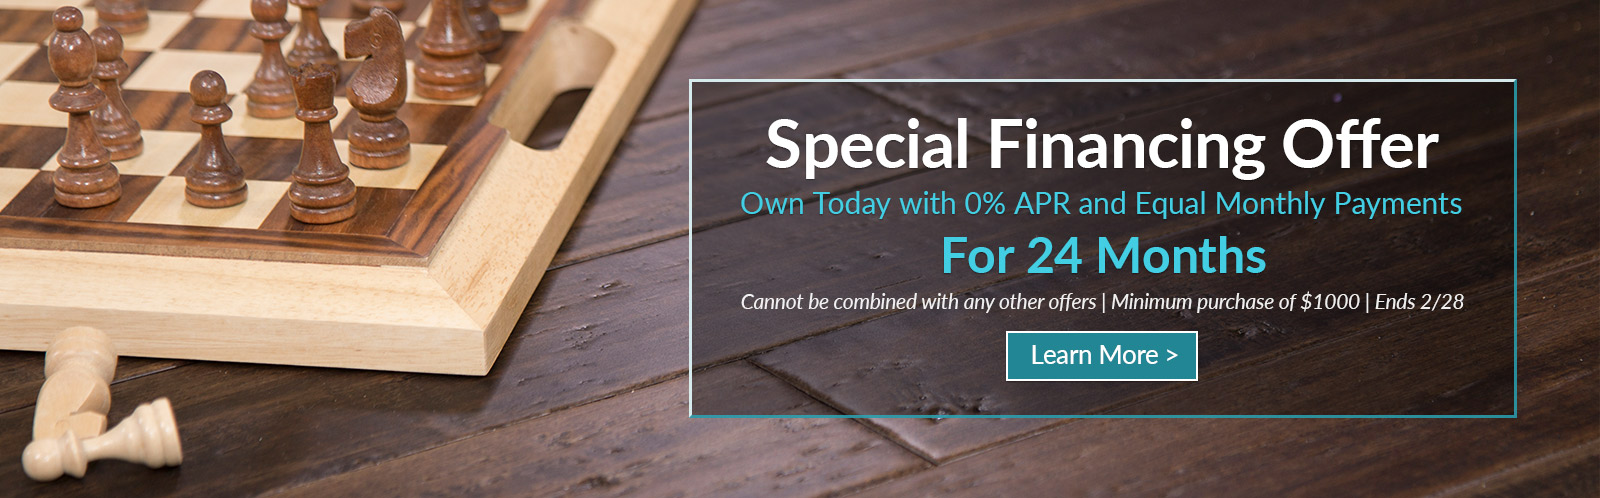 Cali bamboo flooring prices Antique Java Infamousnowcom Green Building Construction Materials And Home Decor Cali Bamboo